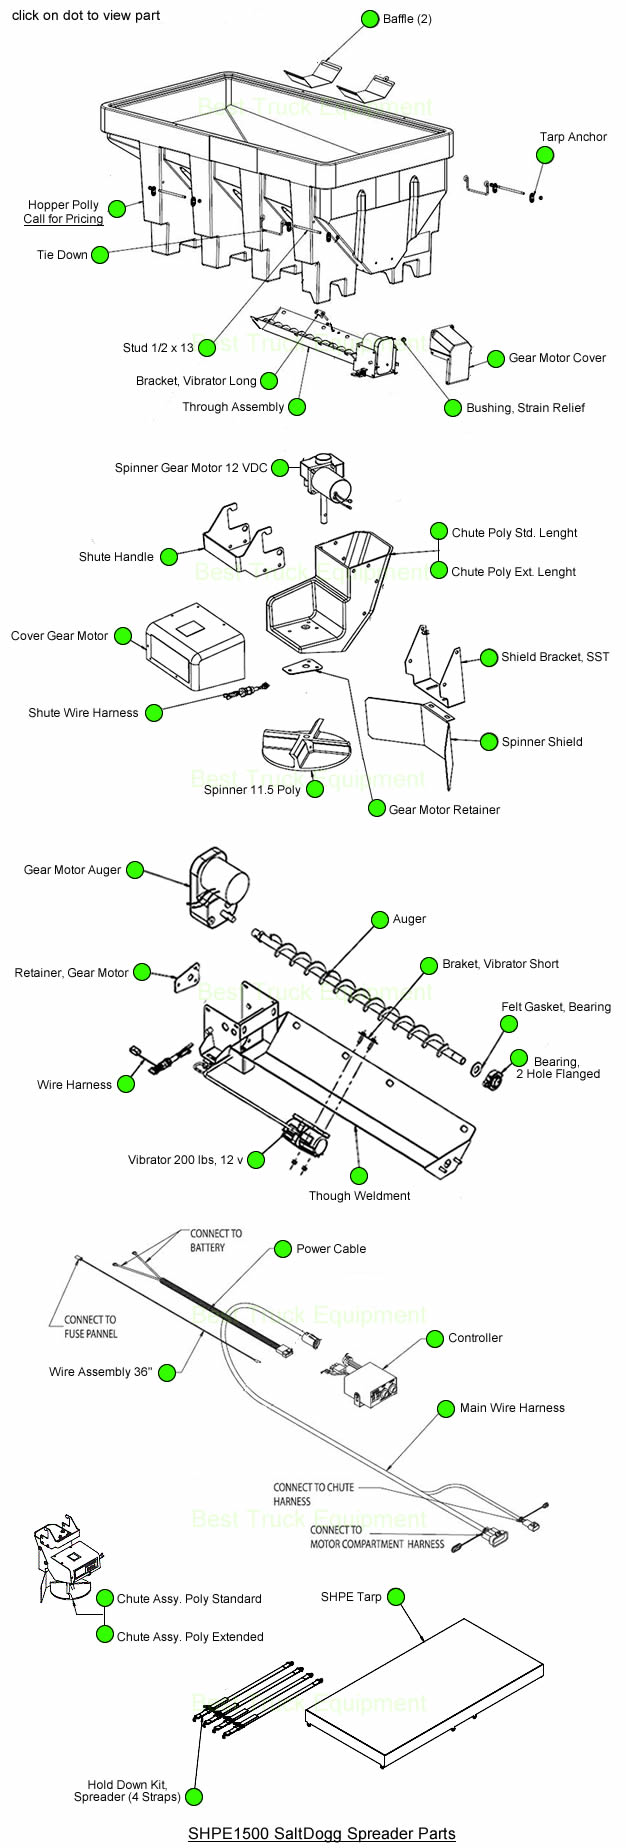 shpe2000 saltdogg shpe2000 buyers salt spreader parts by part look up diagram salt dogg wiring harness at arjmand.co